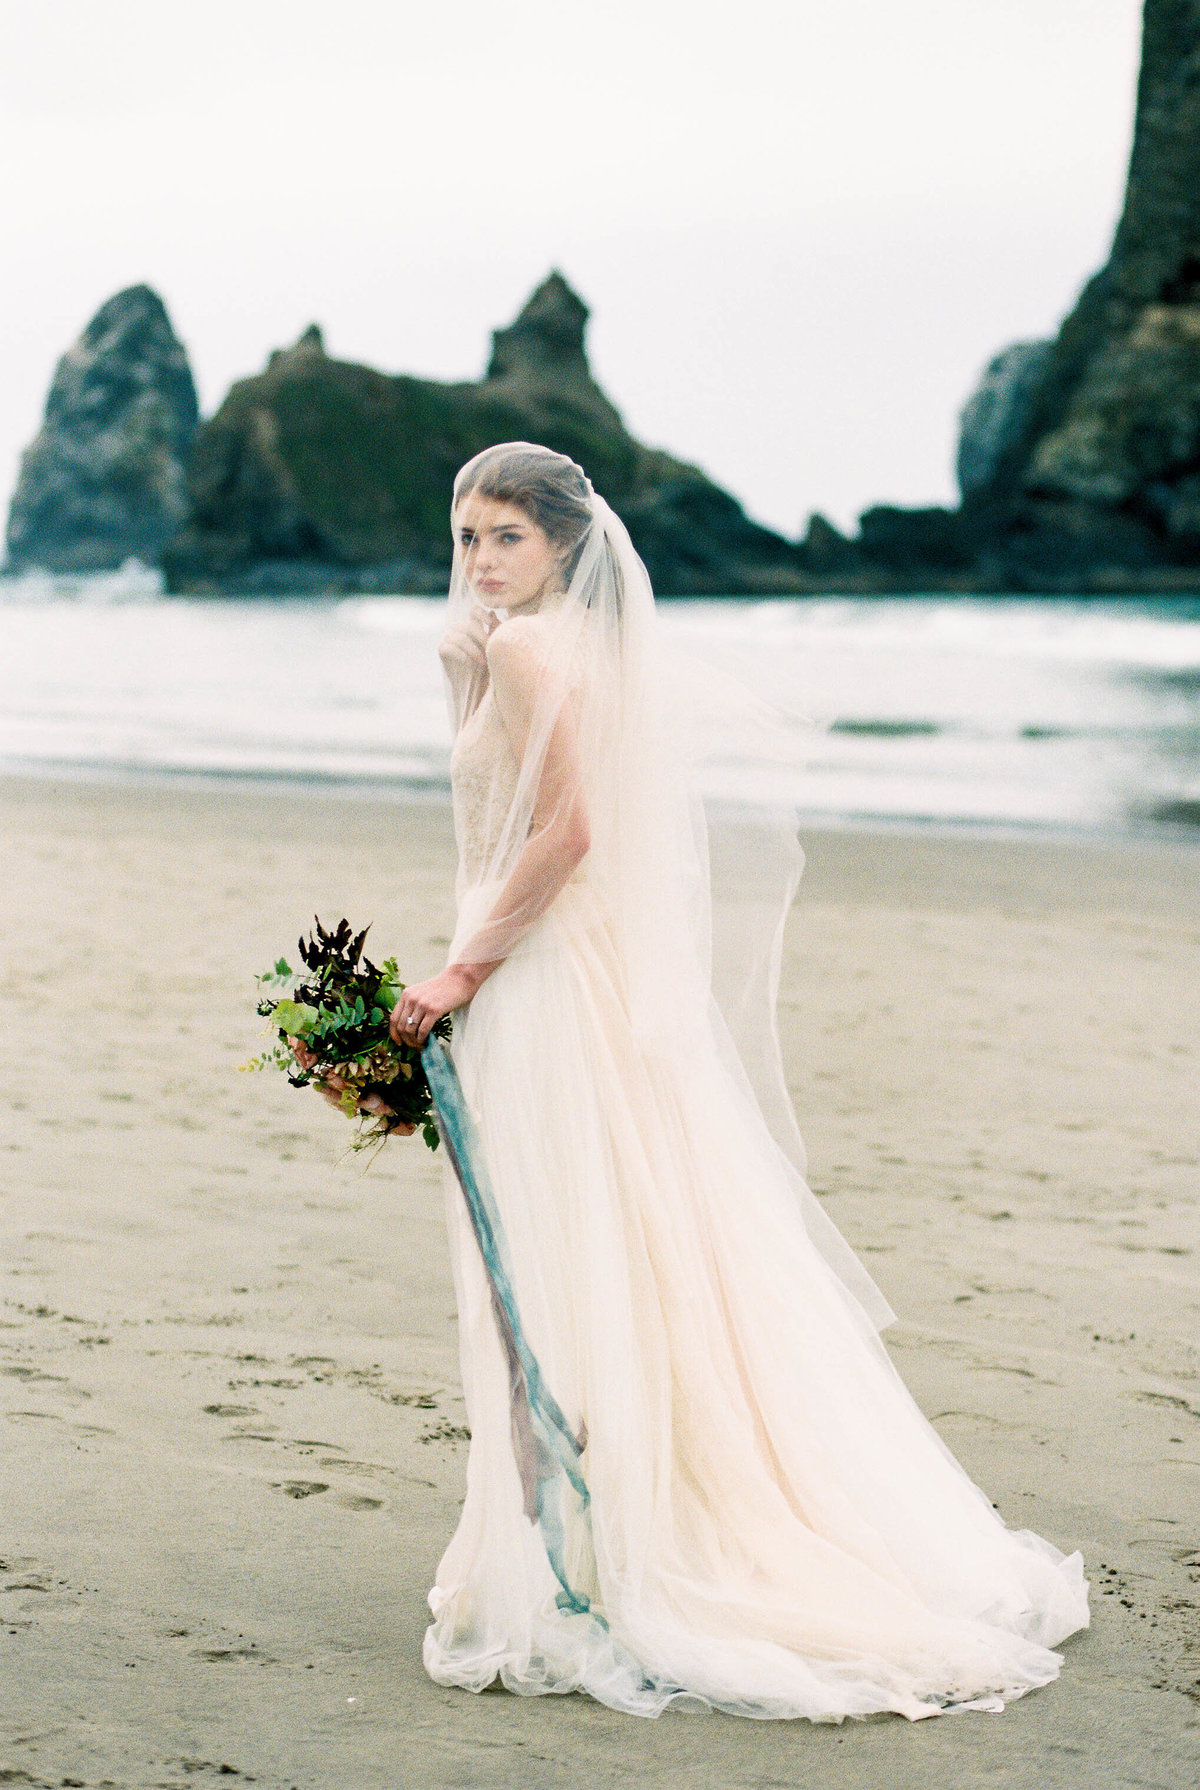 Cannon-Beach-Bridal-Editorial-Georgia-Ruth-Photography-3